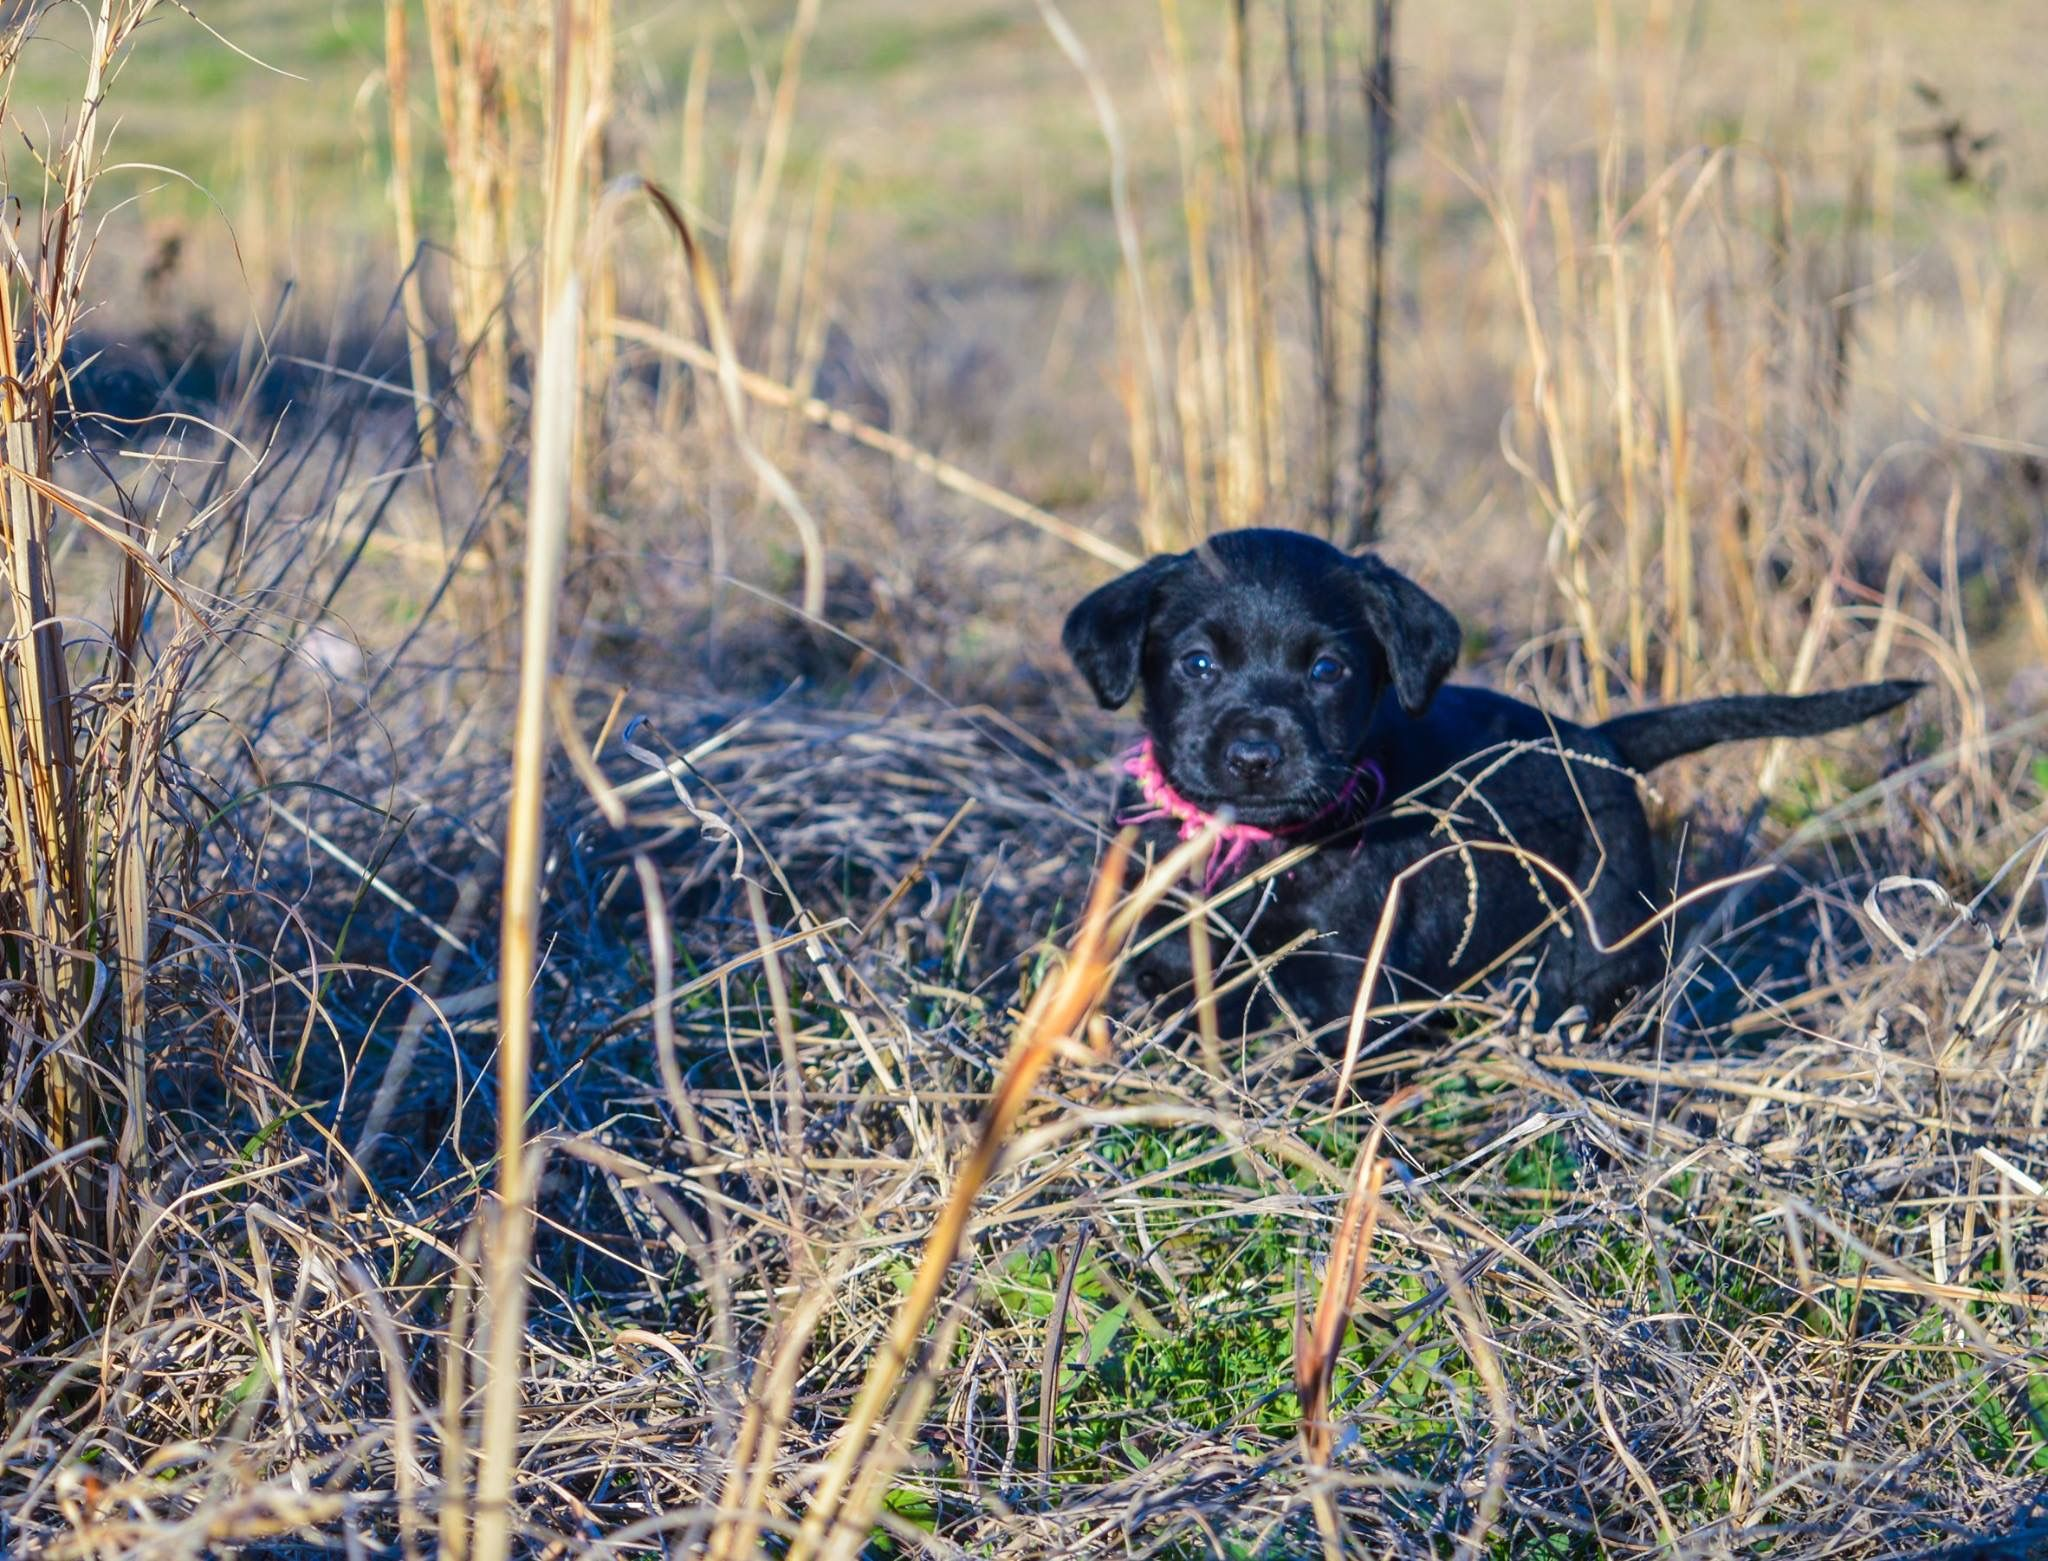 Black Labrador puppy. Photo by Peachy Sweet Photography